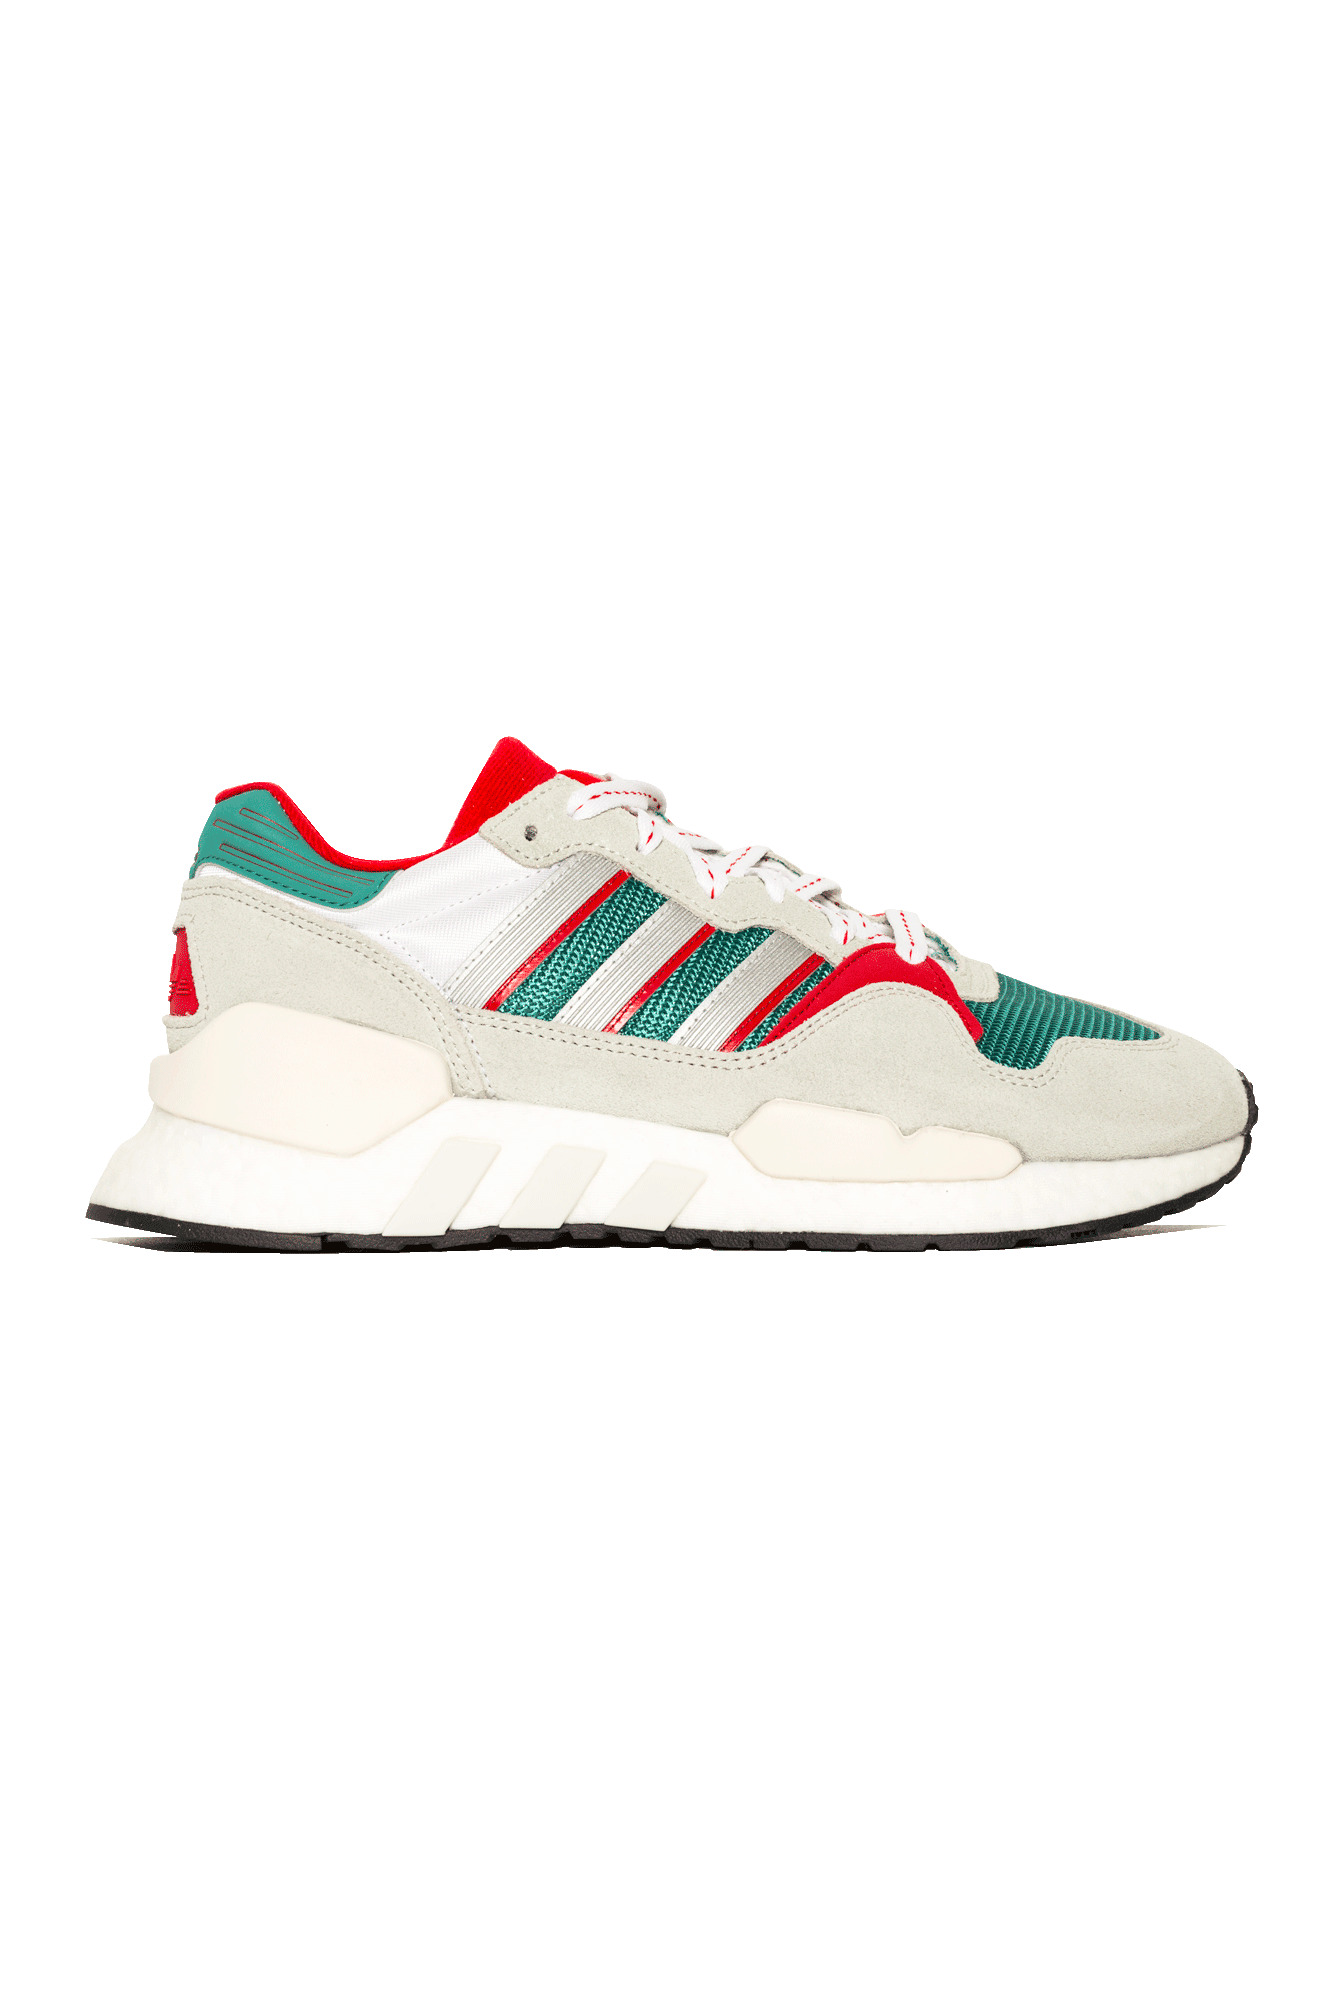 adidas ZX 930 X EQT Never Made Pack Multicolor